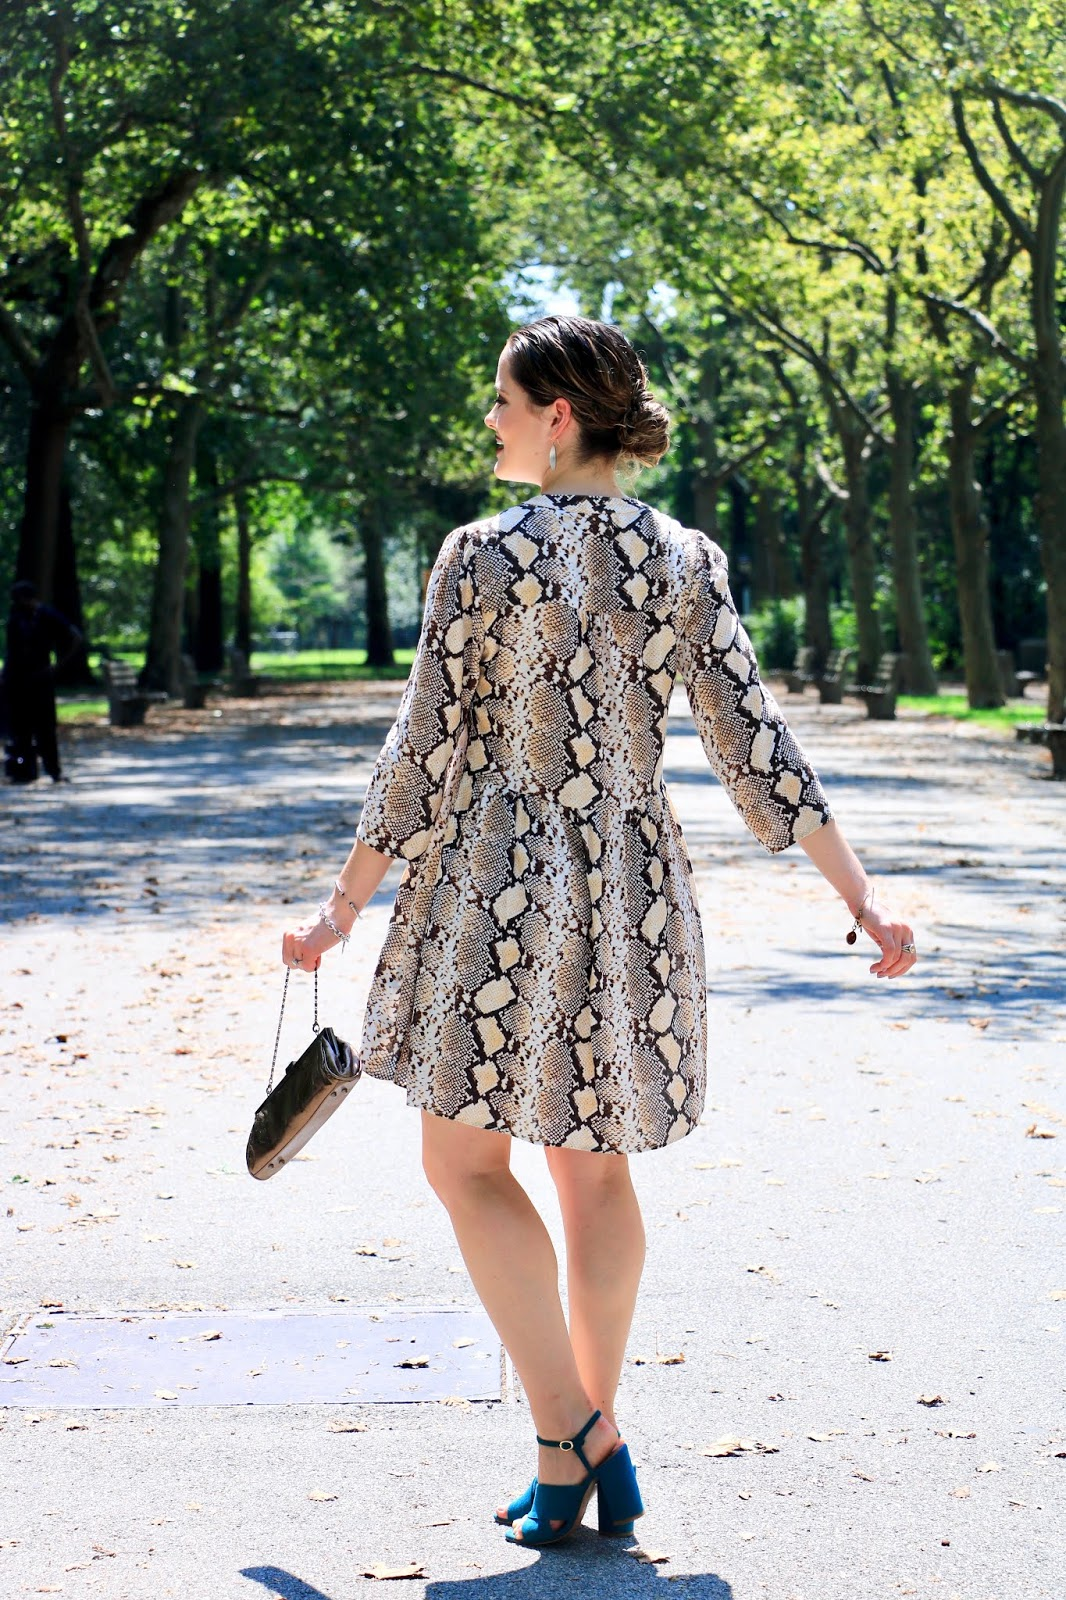 Nyc fashion blogger Kathleen Harper wearing the snake print trend in 2019.